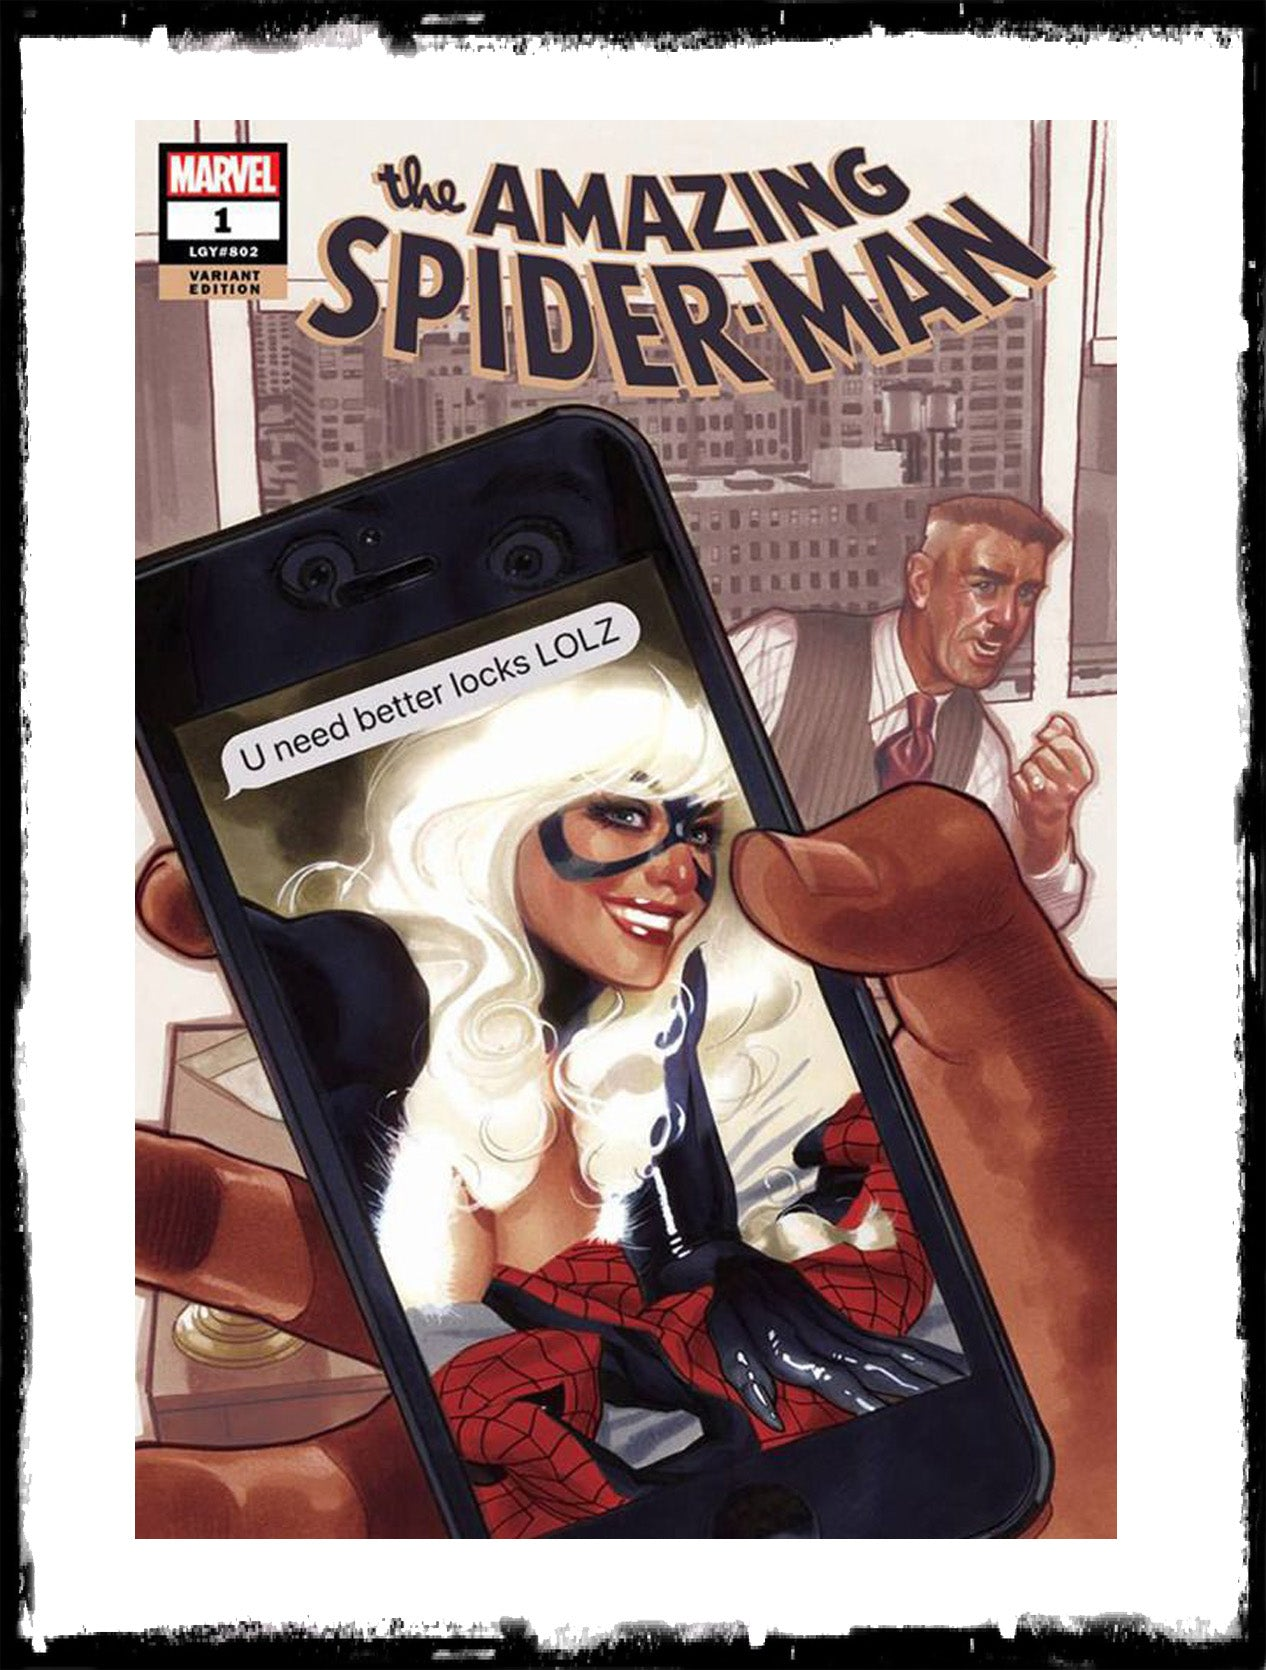 AMAZING SPIDER-MAN - #1 ADAM HUGHES VARIANT (2018 - NM)